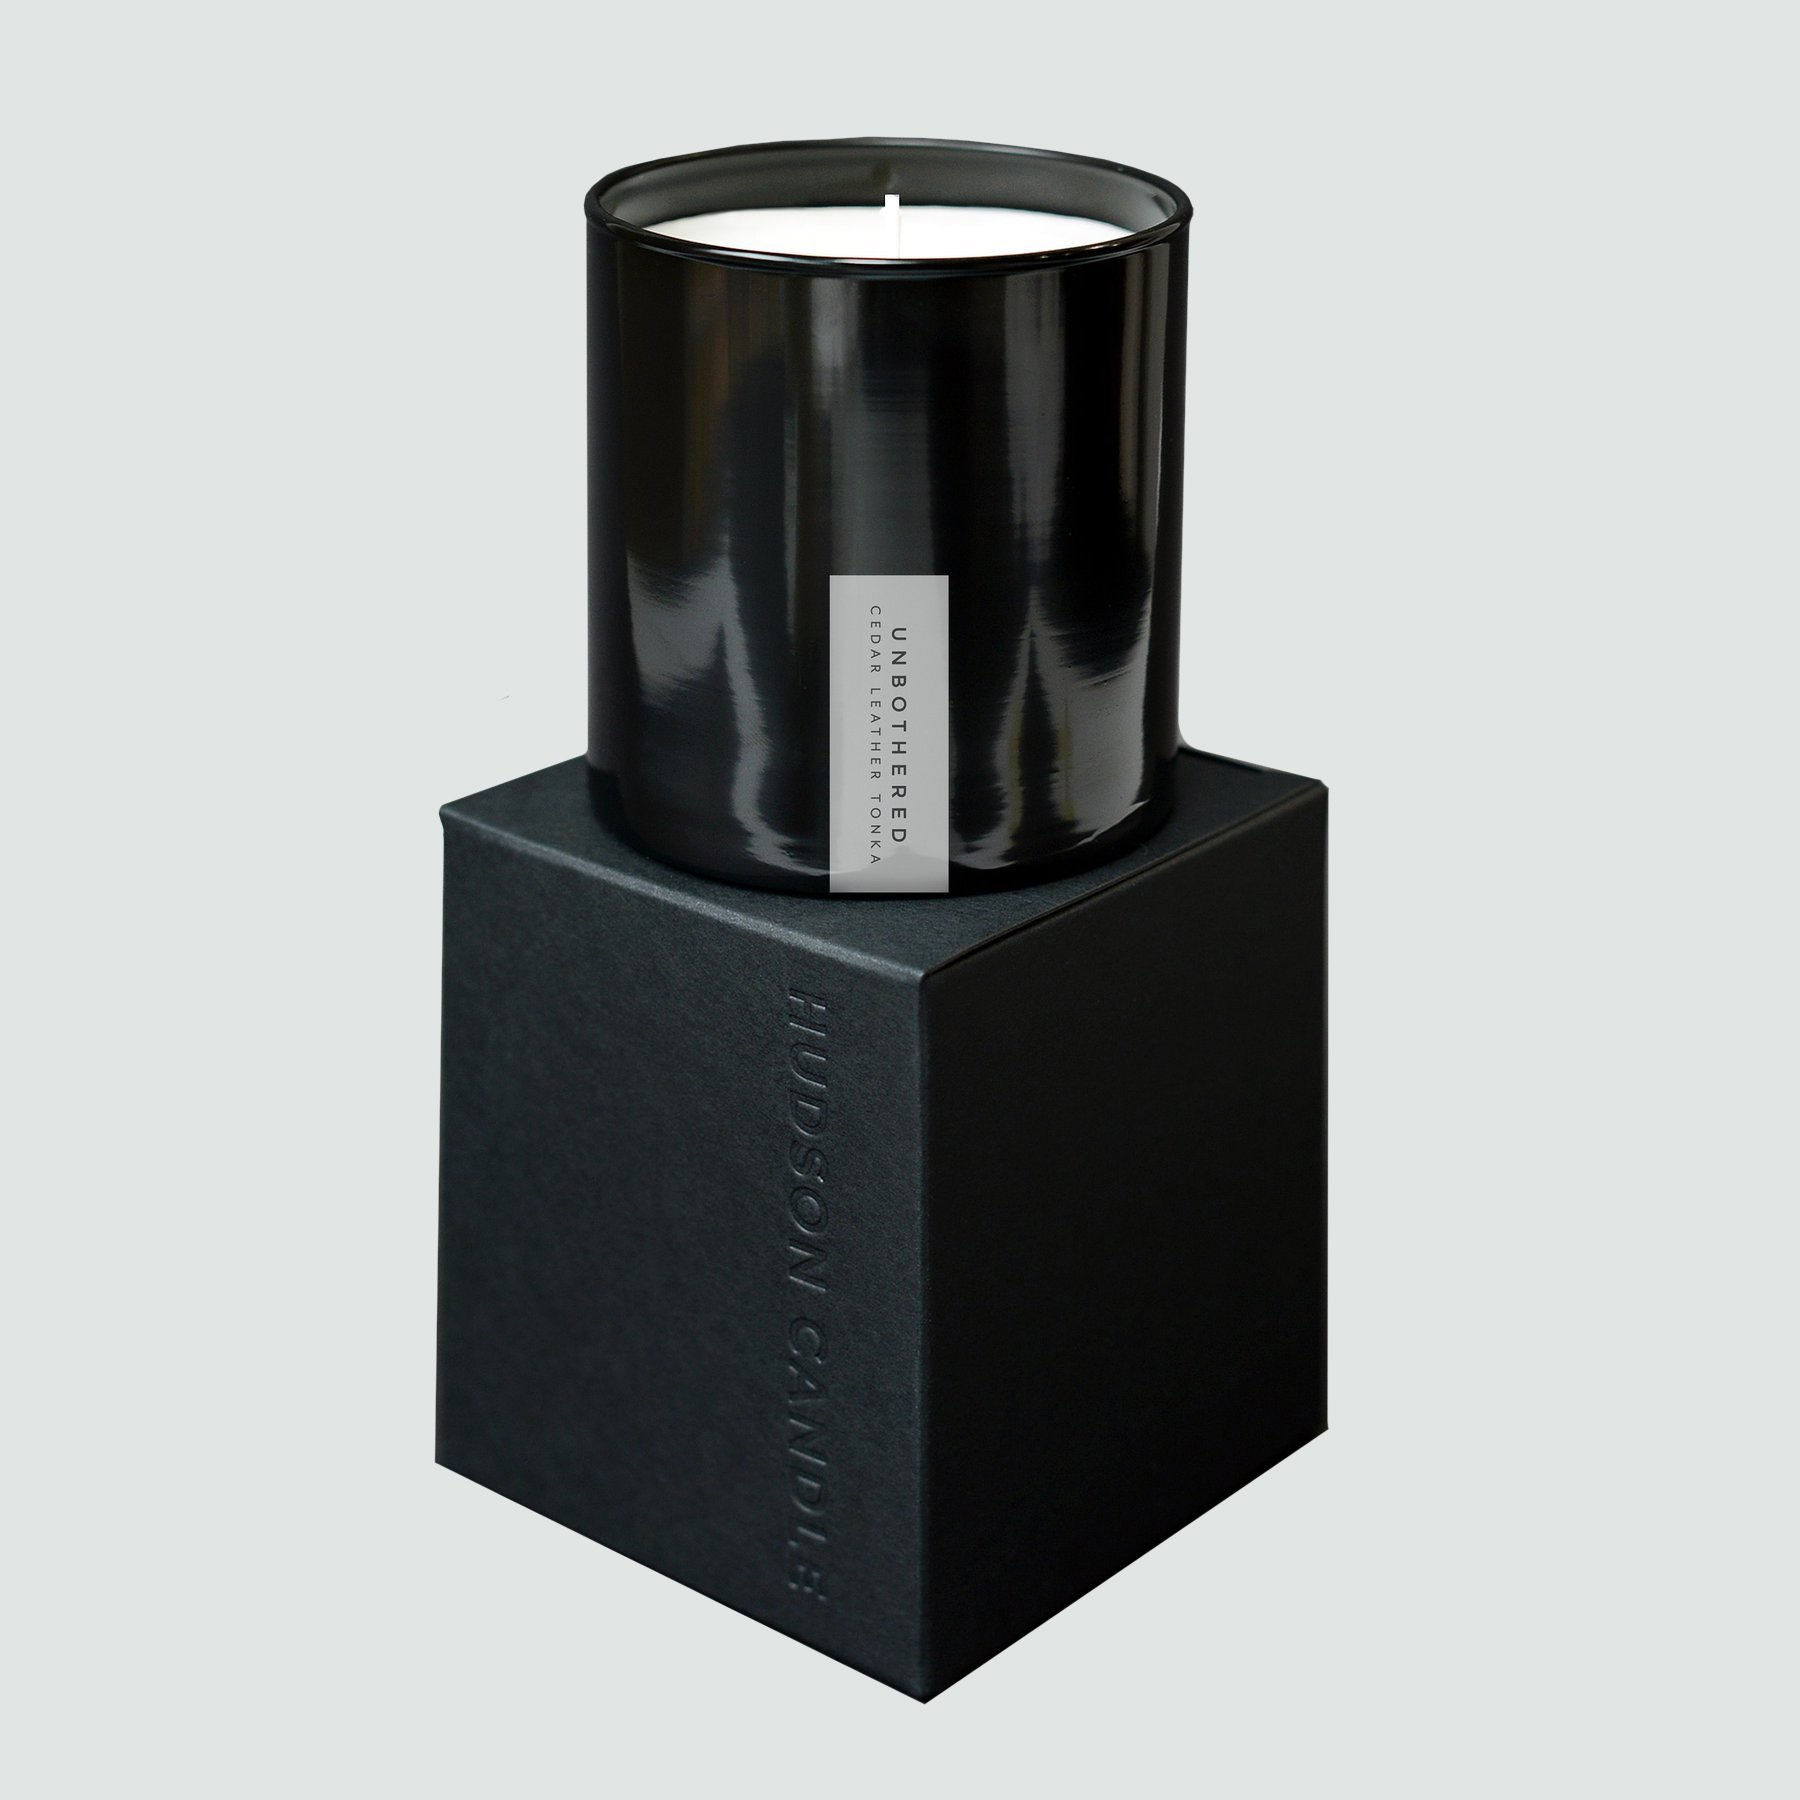 Hudson's Candle Unbothered Cedar Leather Candle